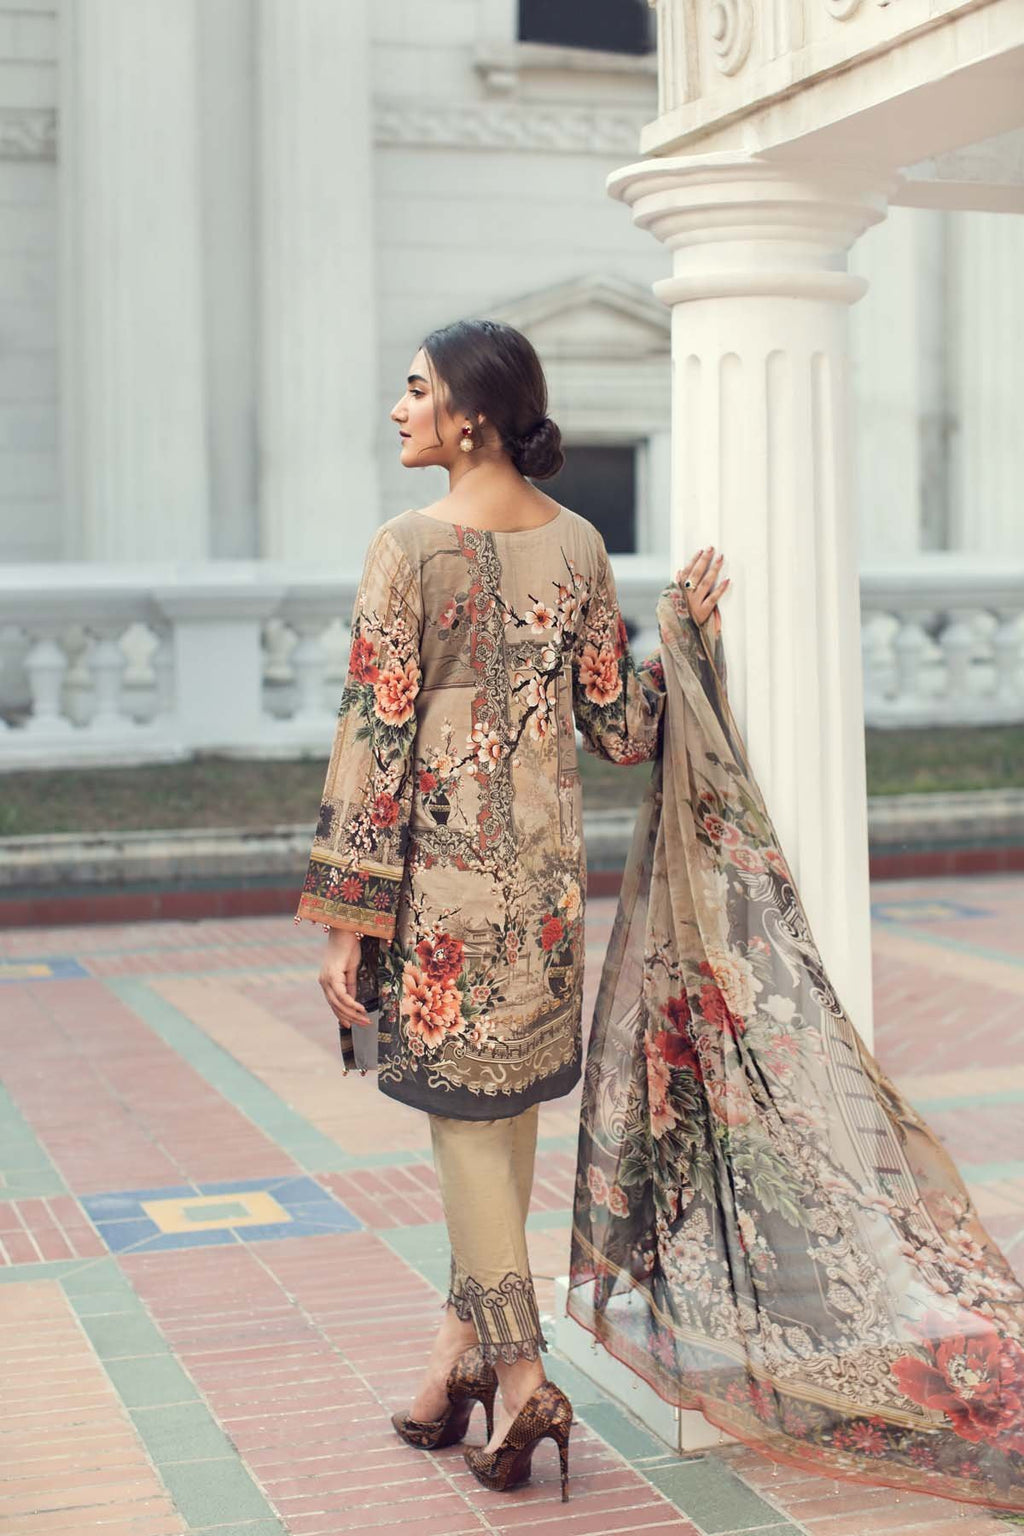 IRIS Summer Lawn Collection 2019 suit Alma Fleur - Embroidered beige lawn kameez, salwar with embroidered patches